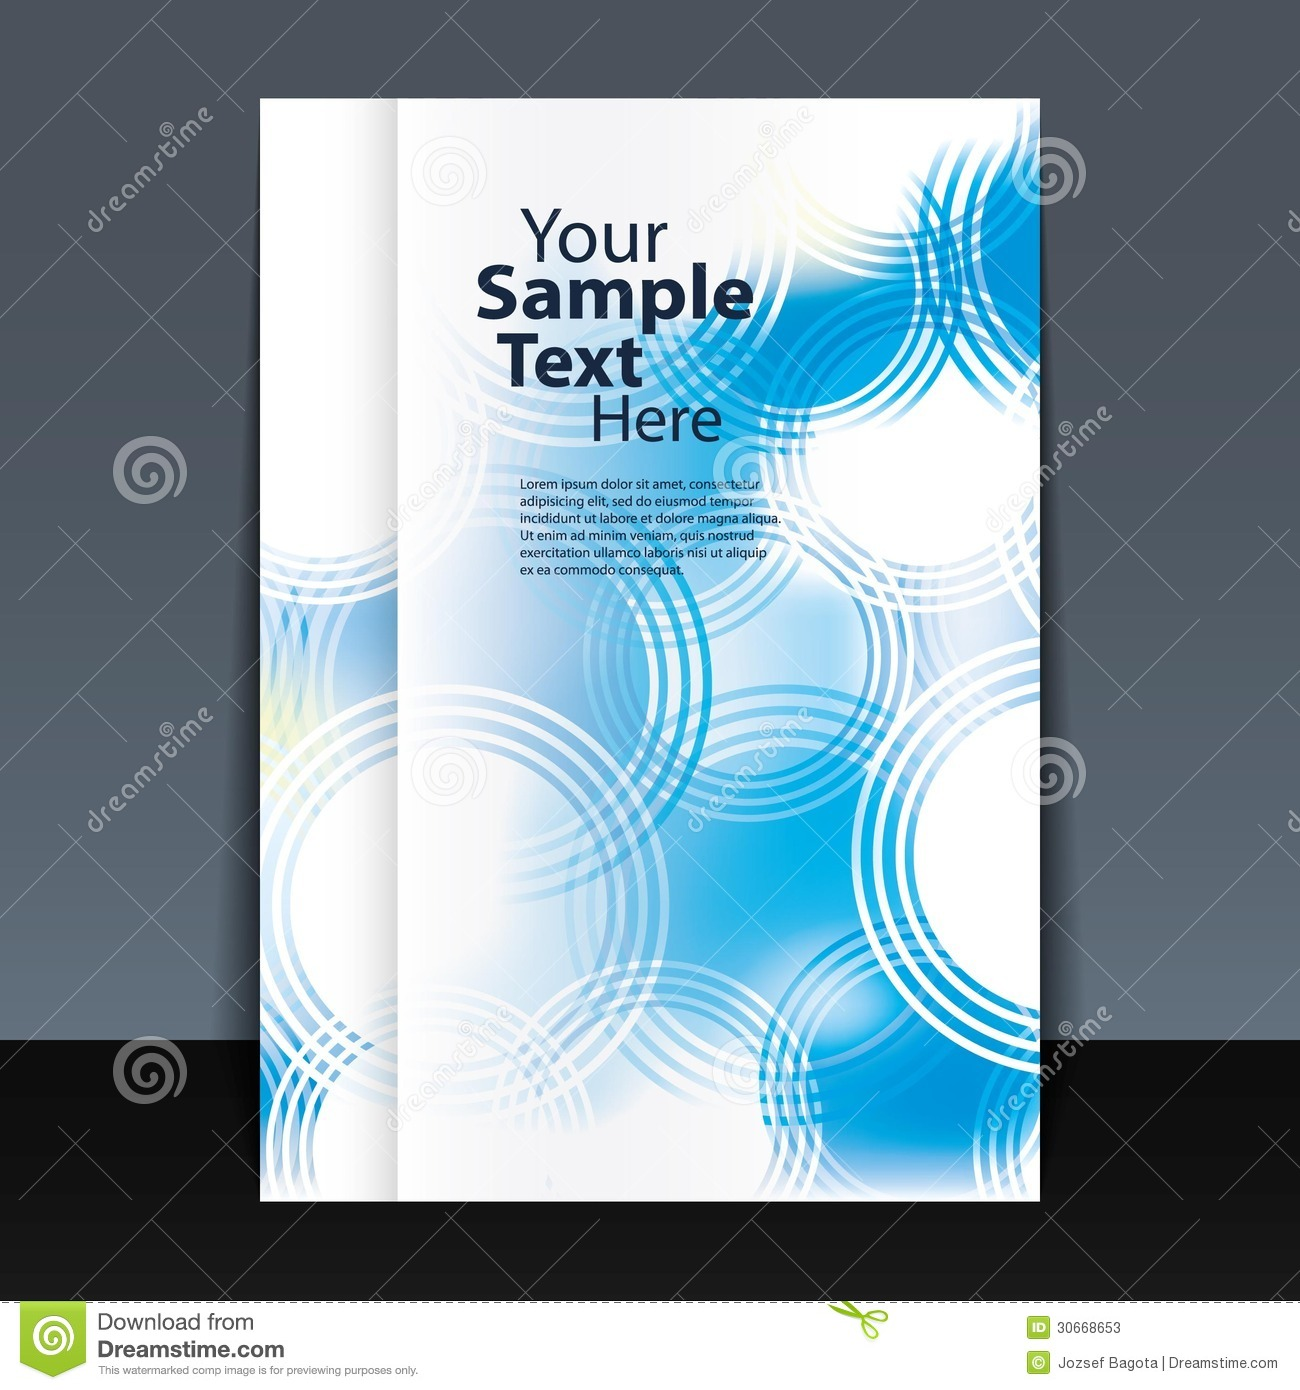 Average Cost Of Book Cover Illustration : Flyer or cover design stock photos image